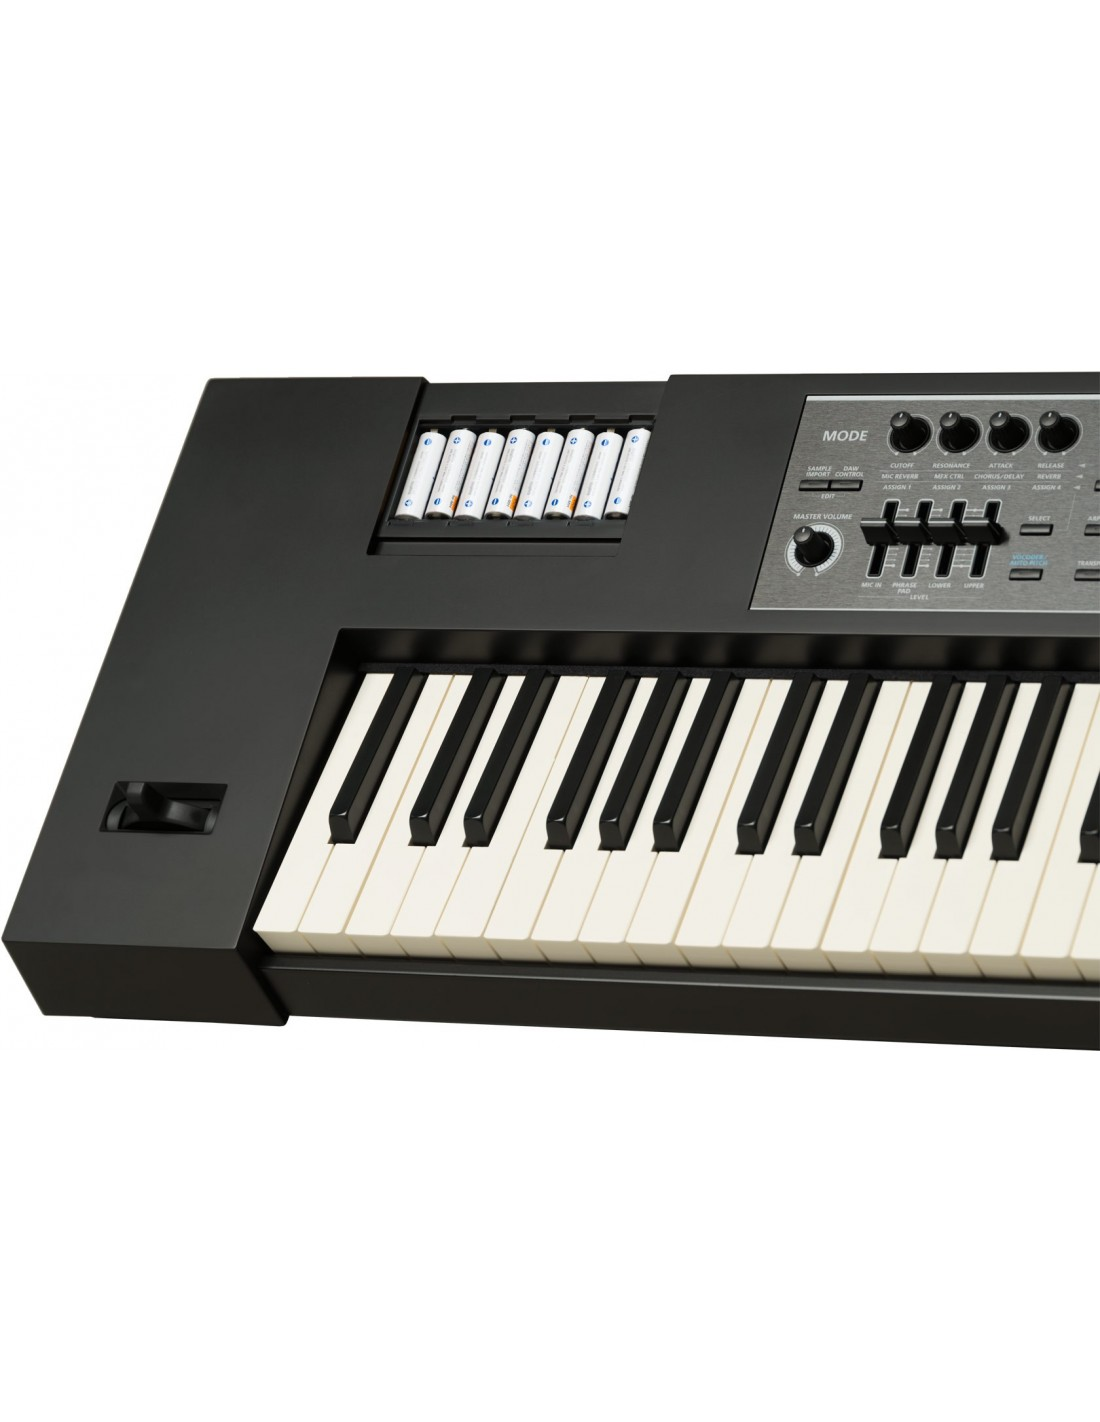 roland juno ds88 synth tiseur num rique 88 notes toucher. Black Bedroom Furniture Sets. Home Design Ideas